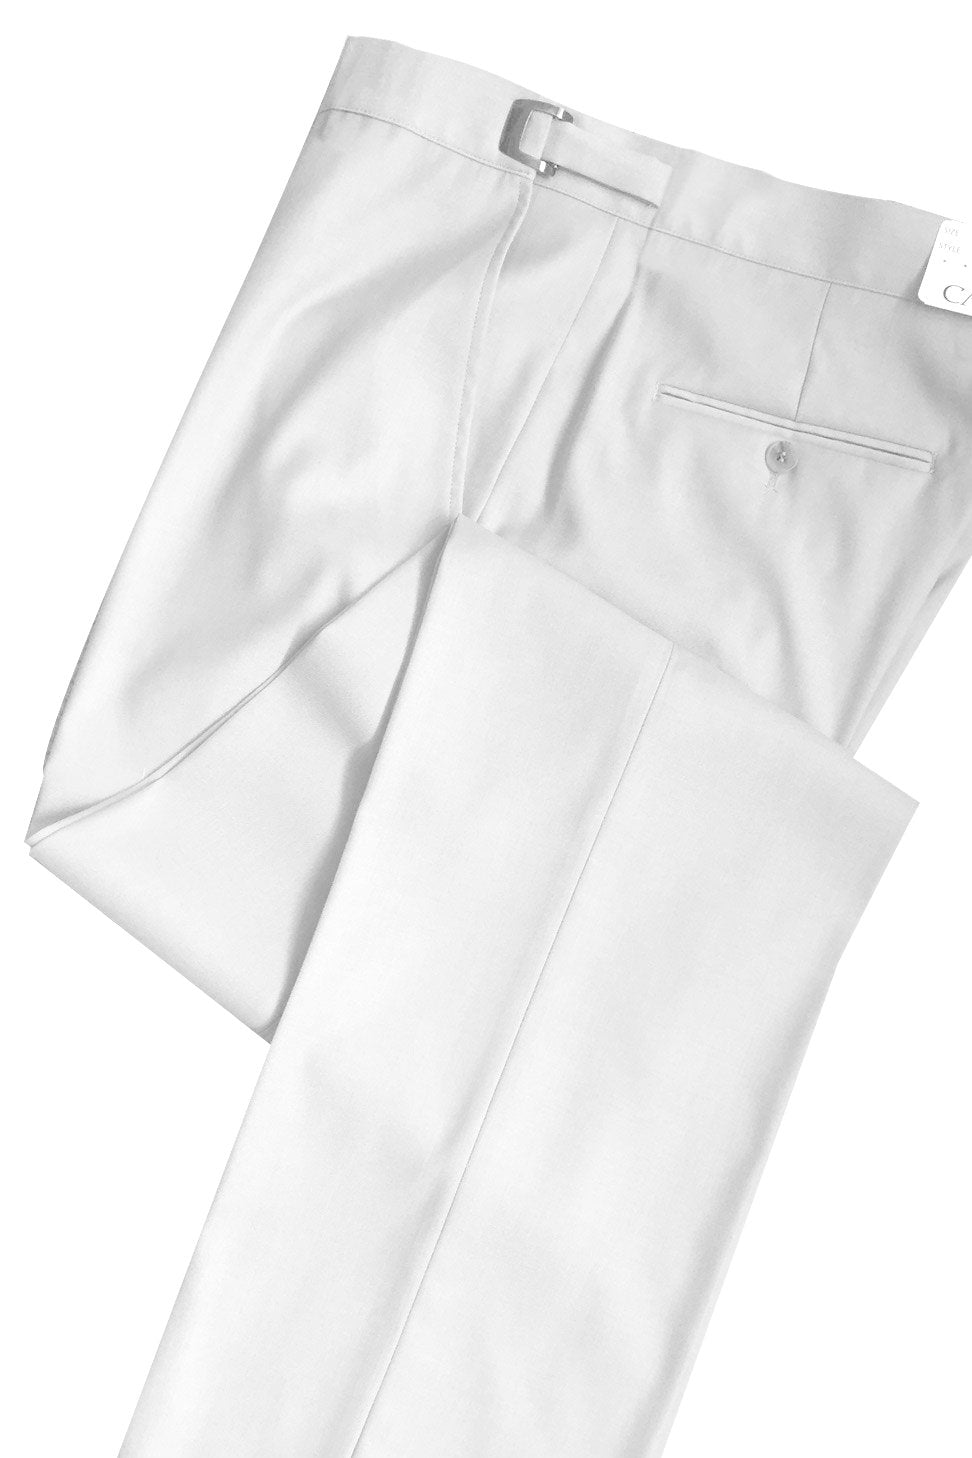 White Slim-Fit Flat Front Tuxedo Pants - Tuxedo Club